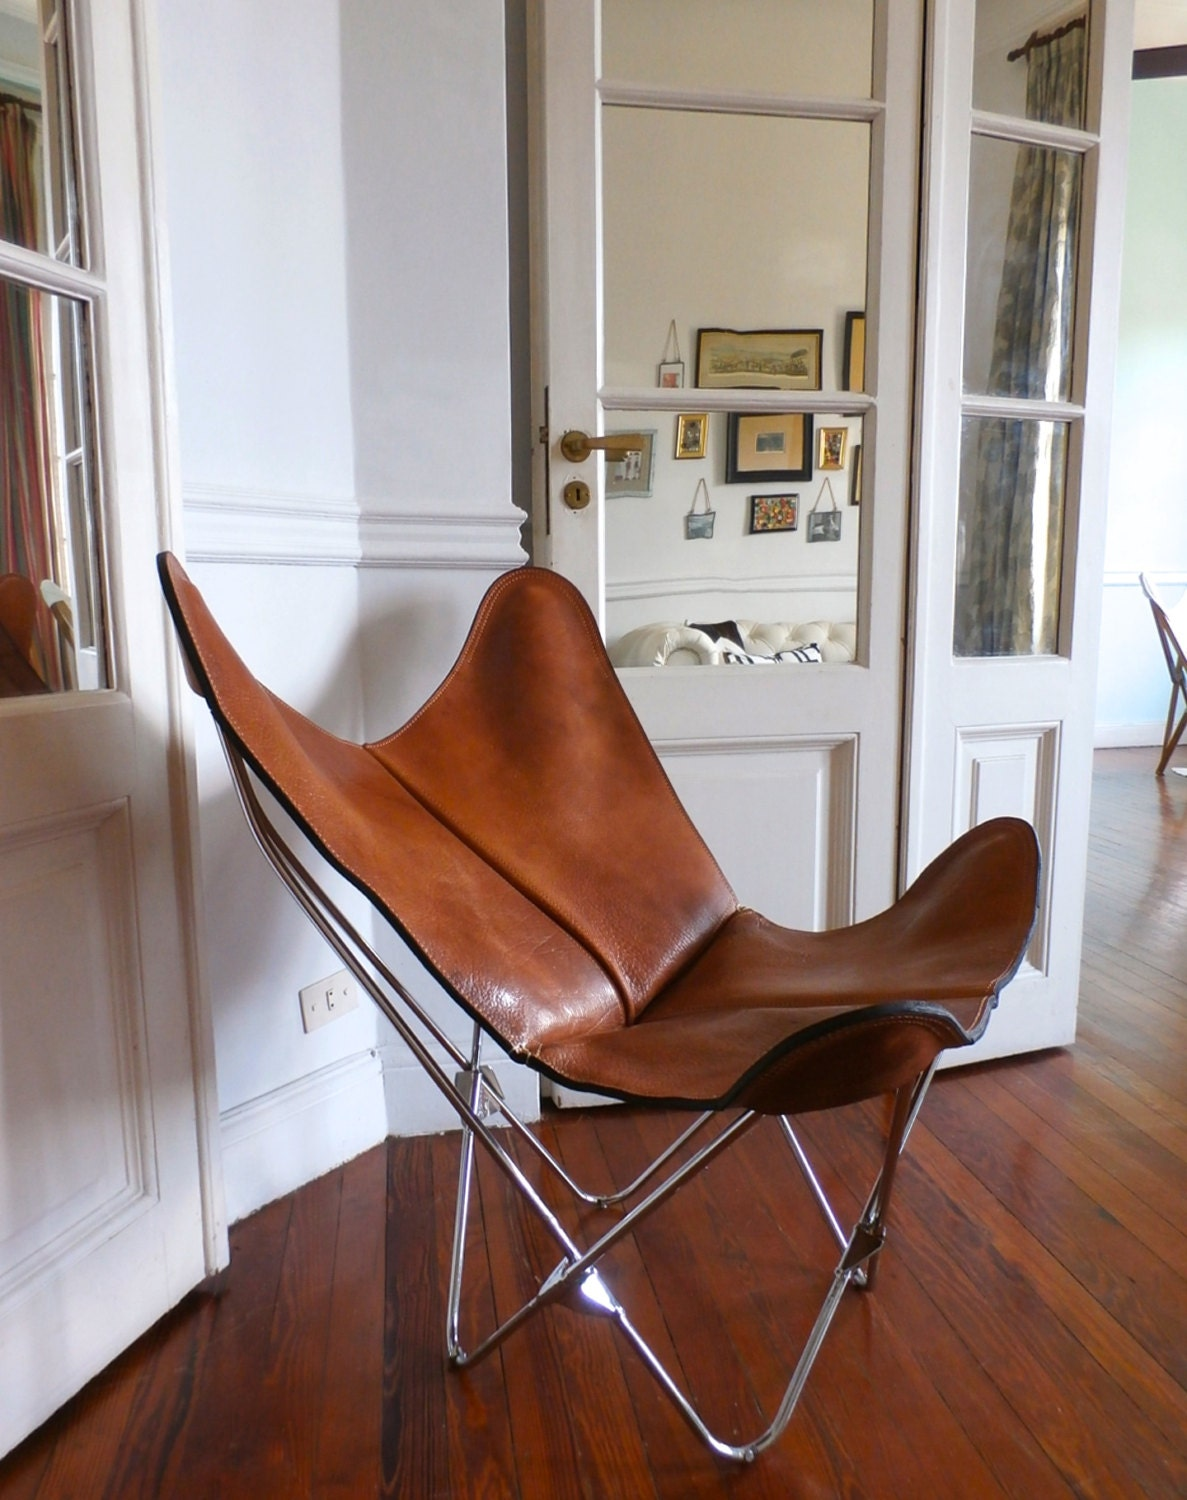 original bkf butterfly chair in premium buffalo tan leather. Black Bedroom Furniture Sets. Home Design Ideas